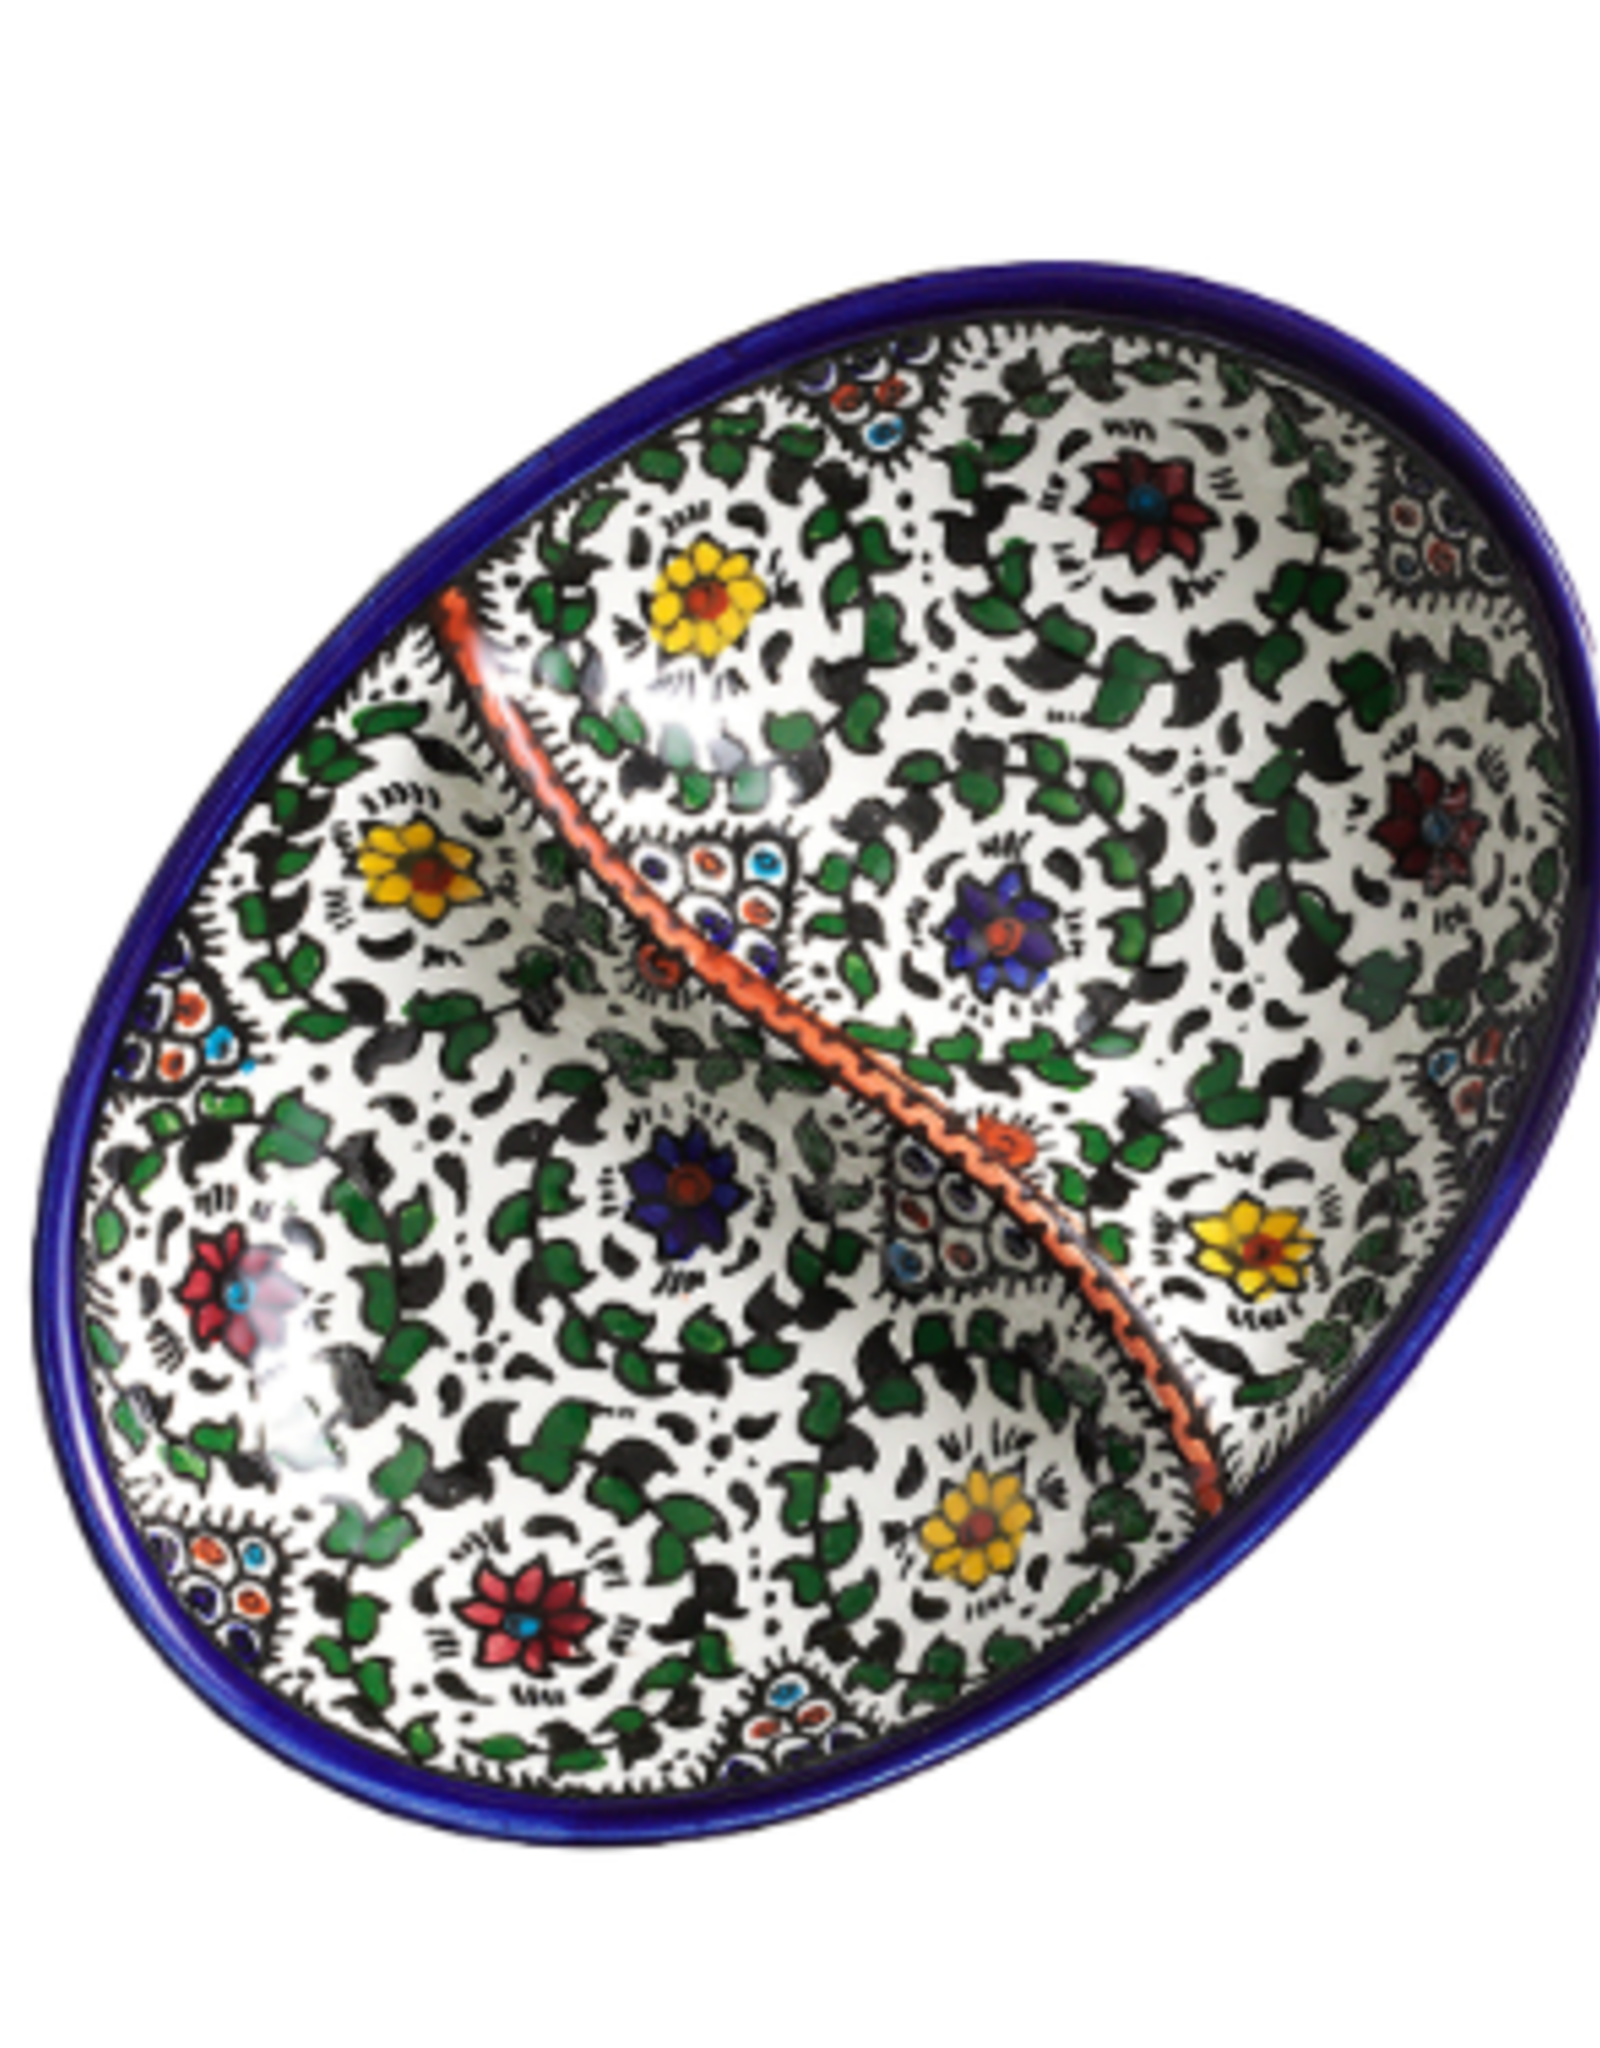 West Bank, Divided Dish